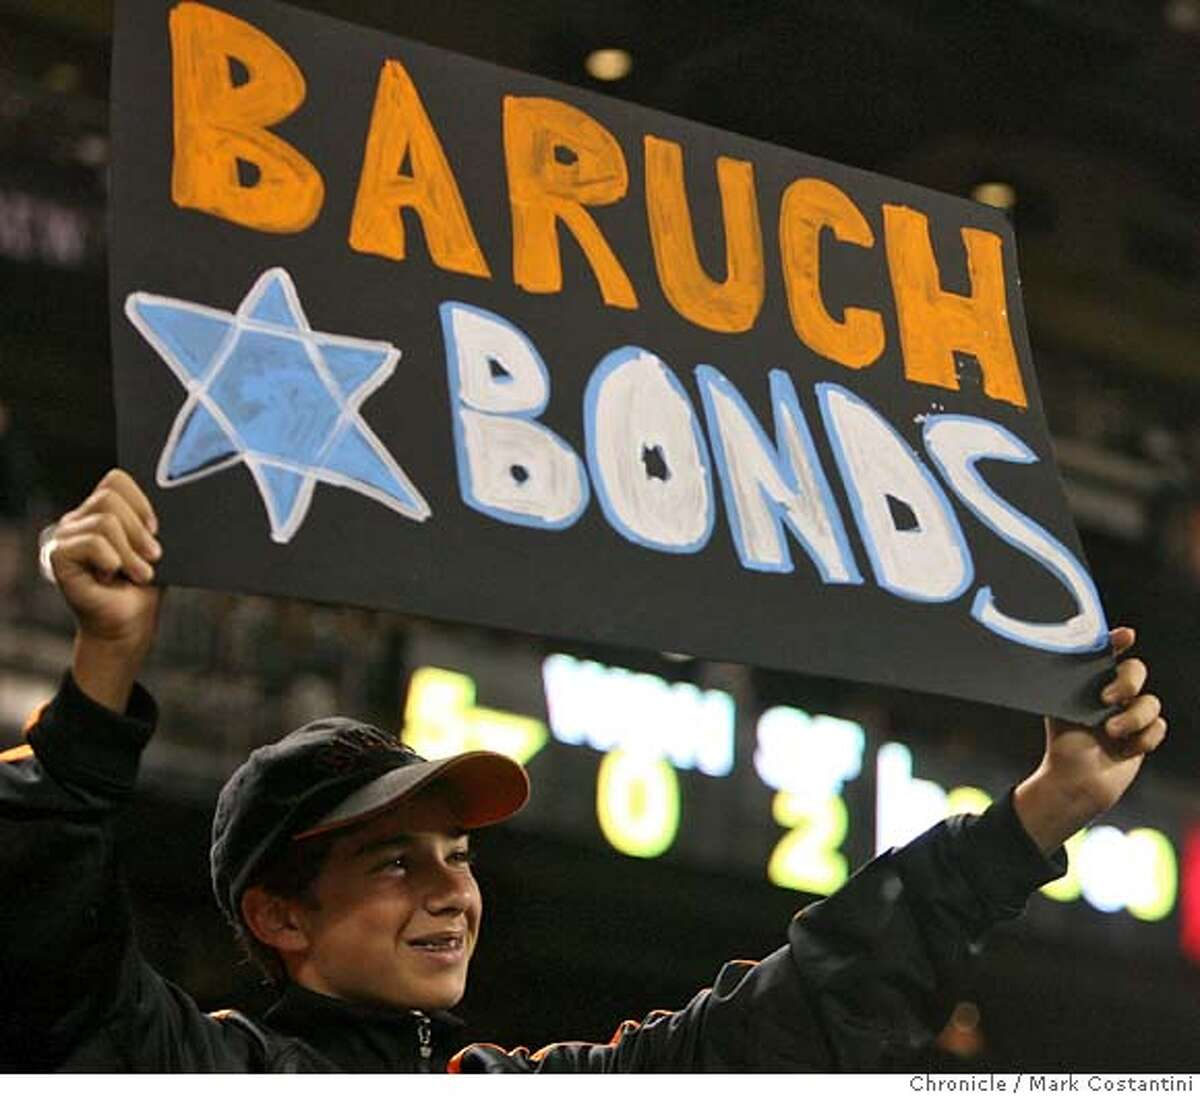 Giants fan Eli Feldman, 13, Palo Alto with a sign that is Barry Bond's name in Hebrew. It was Jewish Heritage Night tonight at AT$T Park. Giants v. Nationals at ATT Park. Photo: Mark Costantini / S.F. Chronicle